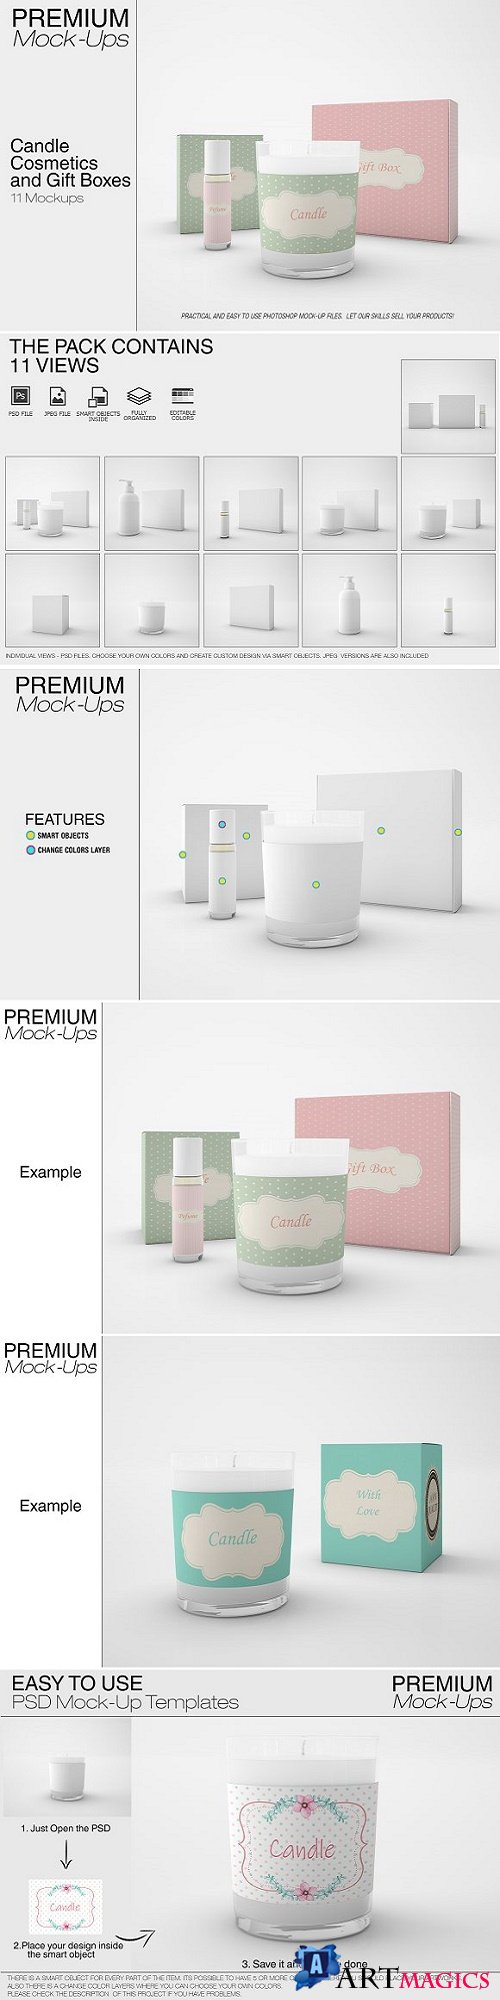 Candle, Cosmetics & Gift Boxes Set - 2611939